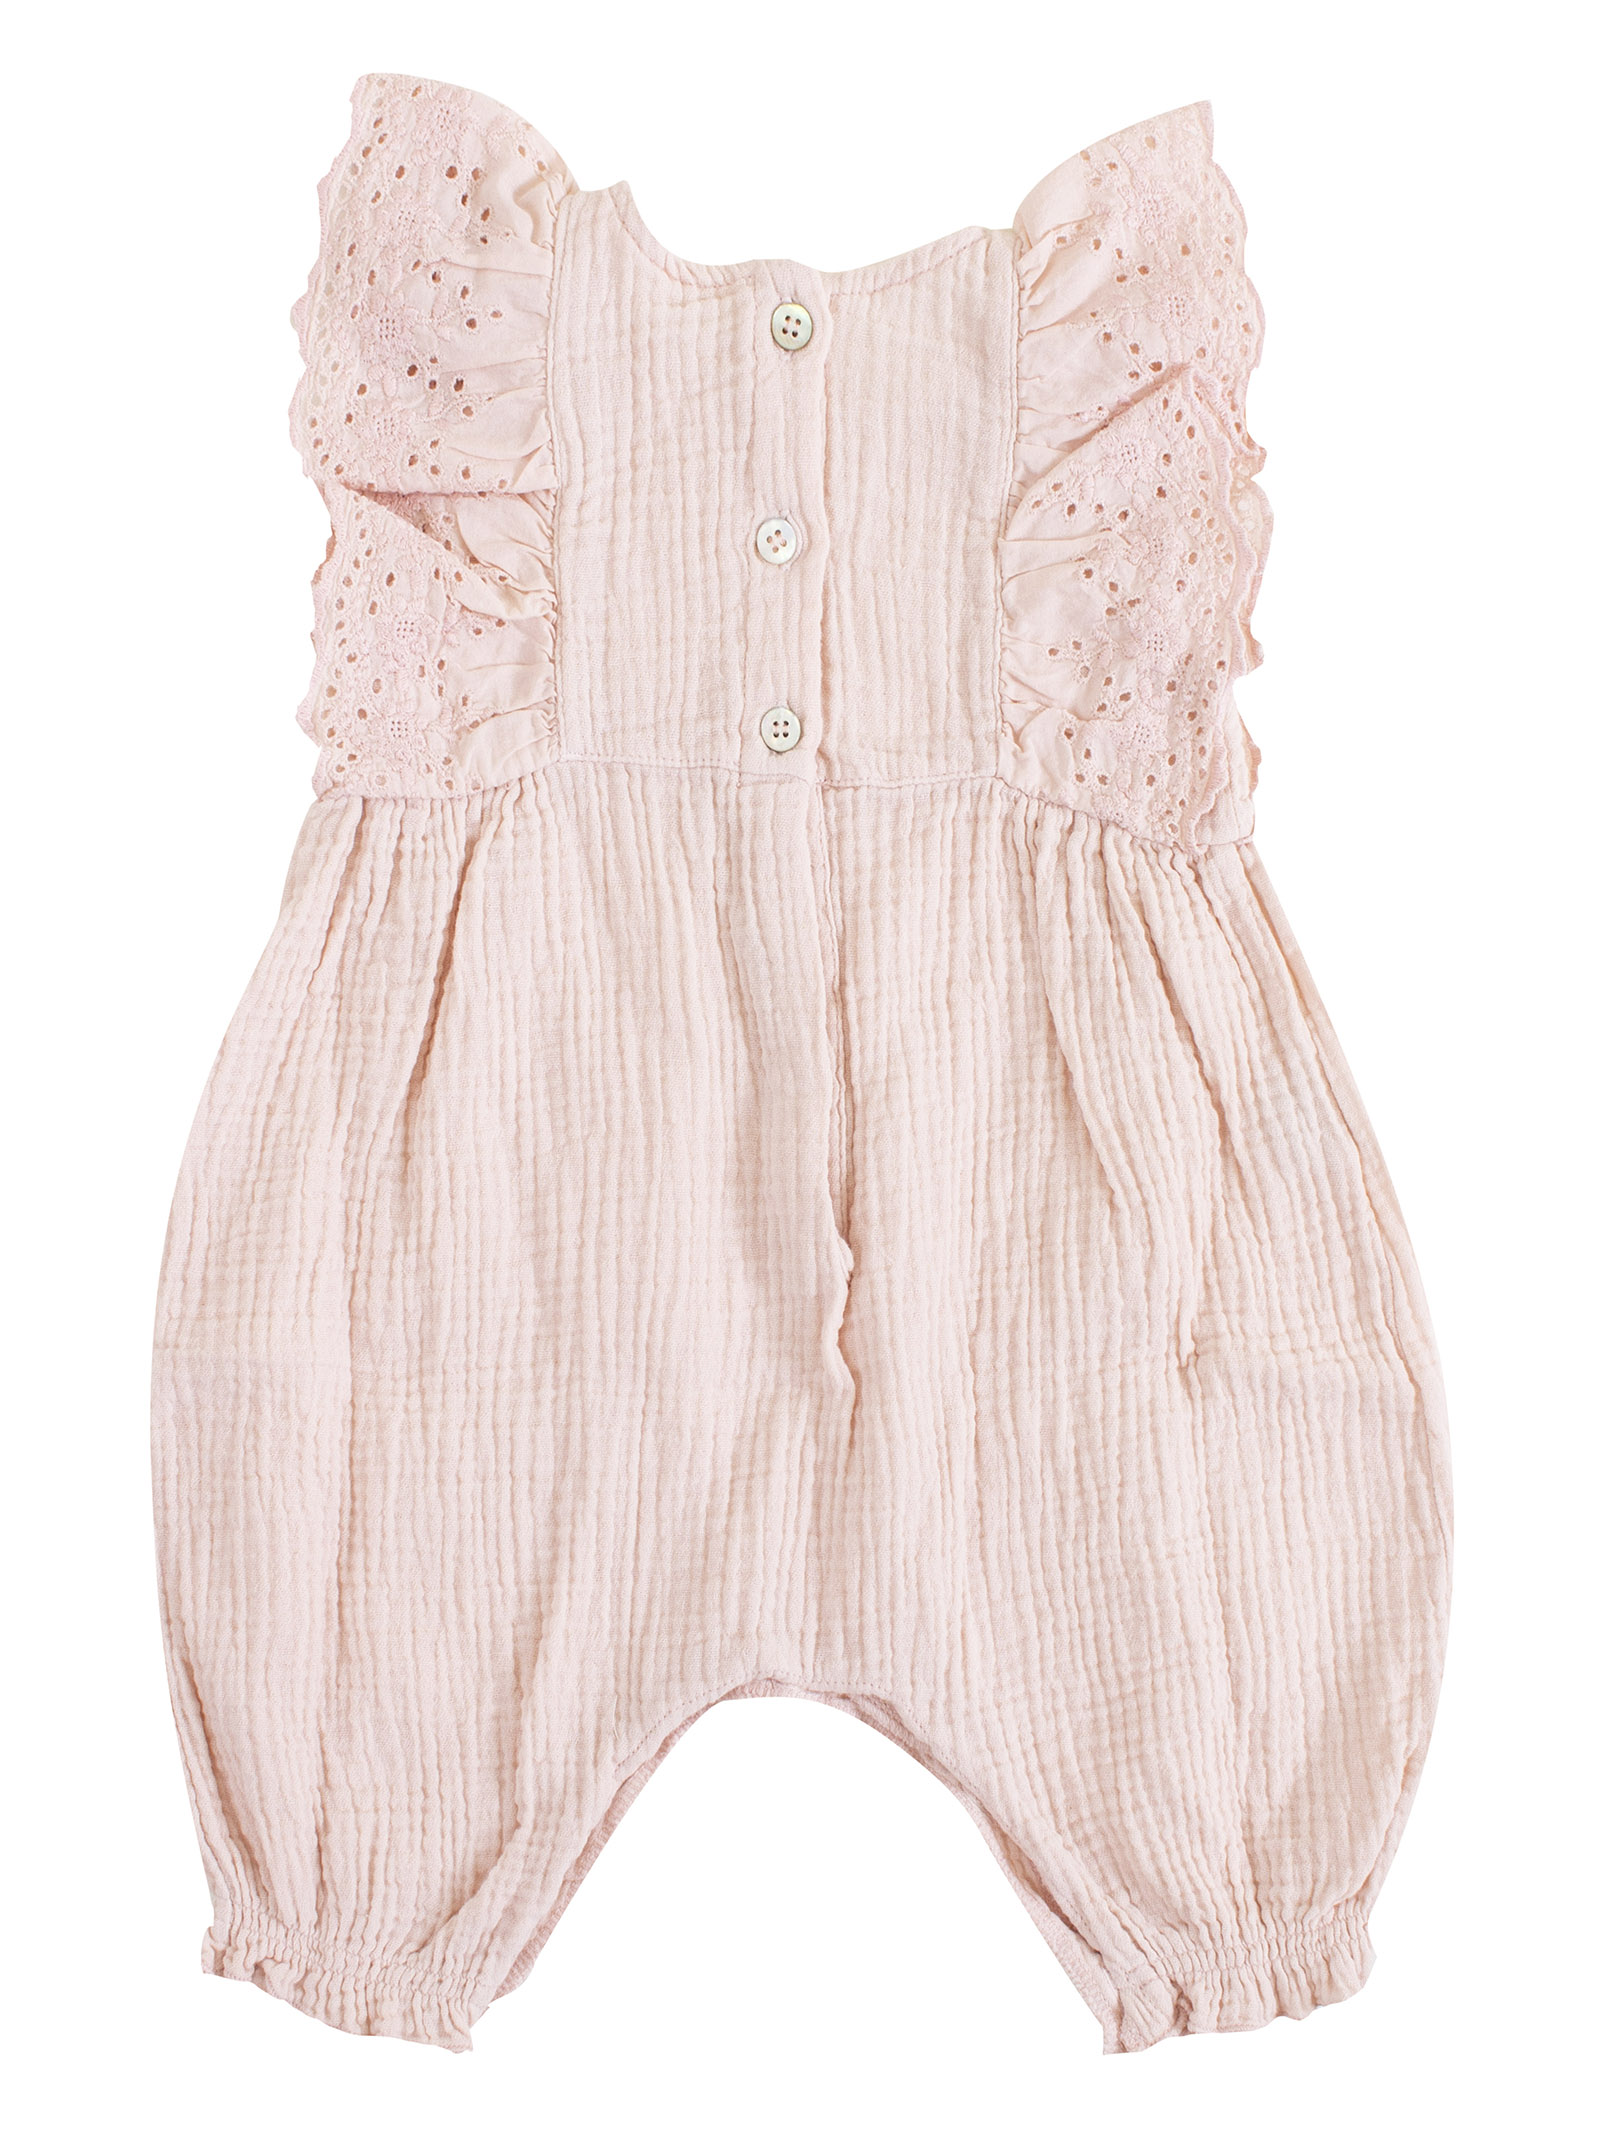 bb8a1d451 HOME / CATEGORIES / CLOTHING / NEWBORN JUMPSUITS / NEWBORN BODYSUIT WITH  EMBROIDERY /